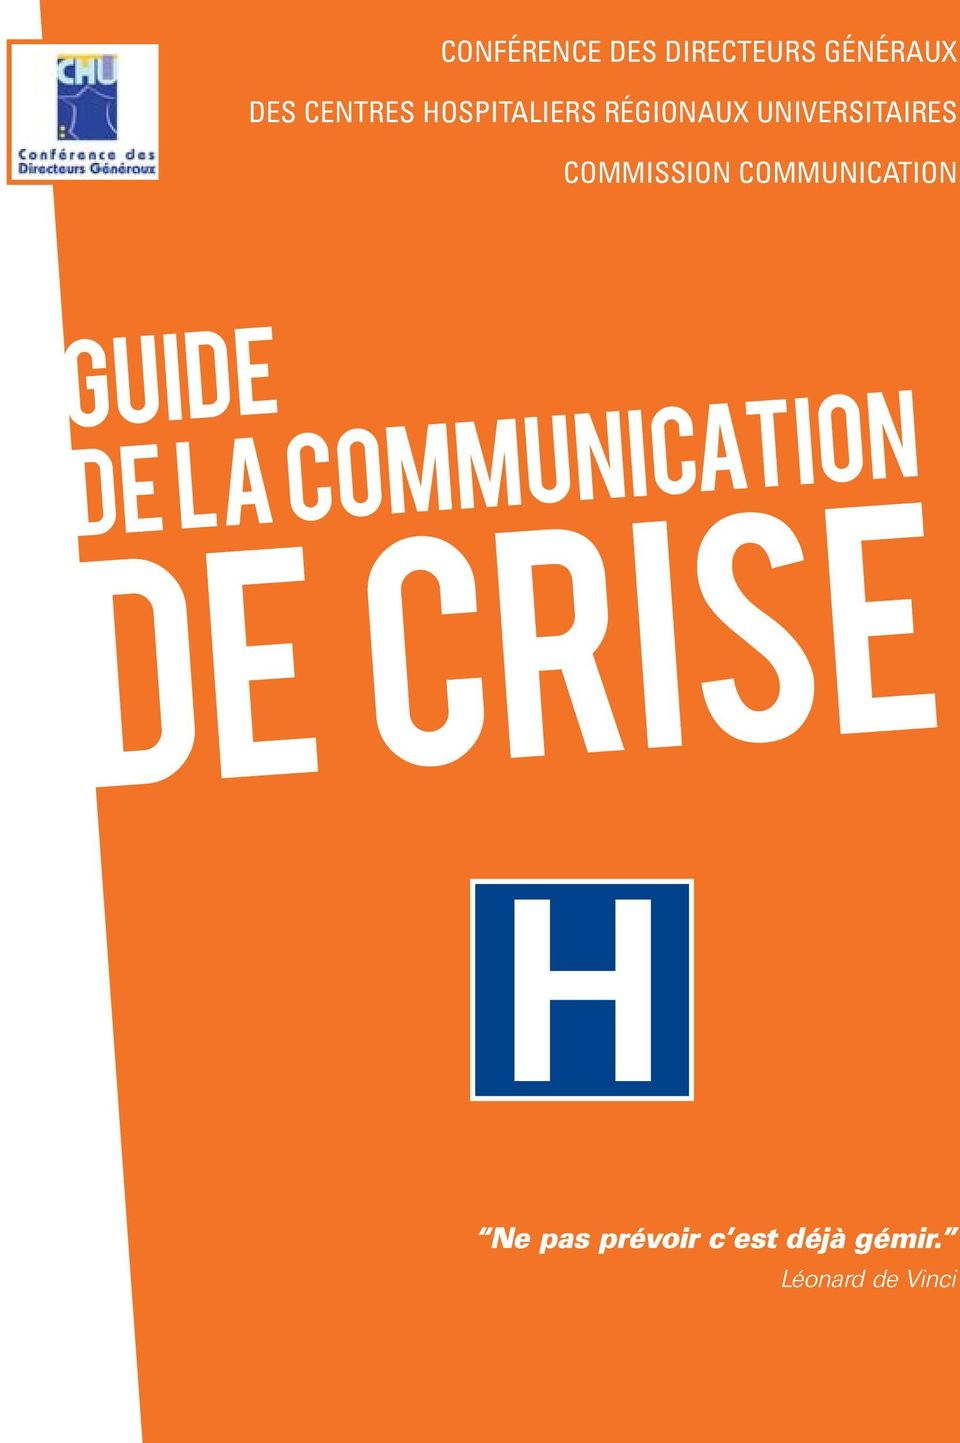 COMMUNICATION GUIDE de la COMMUNICATION DE CRISE